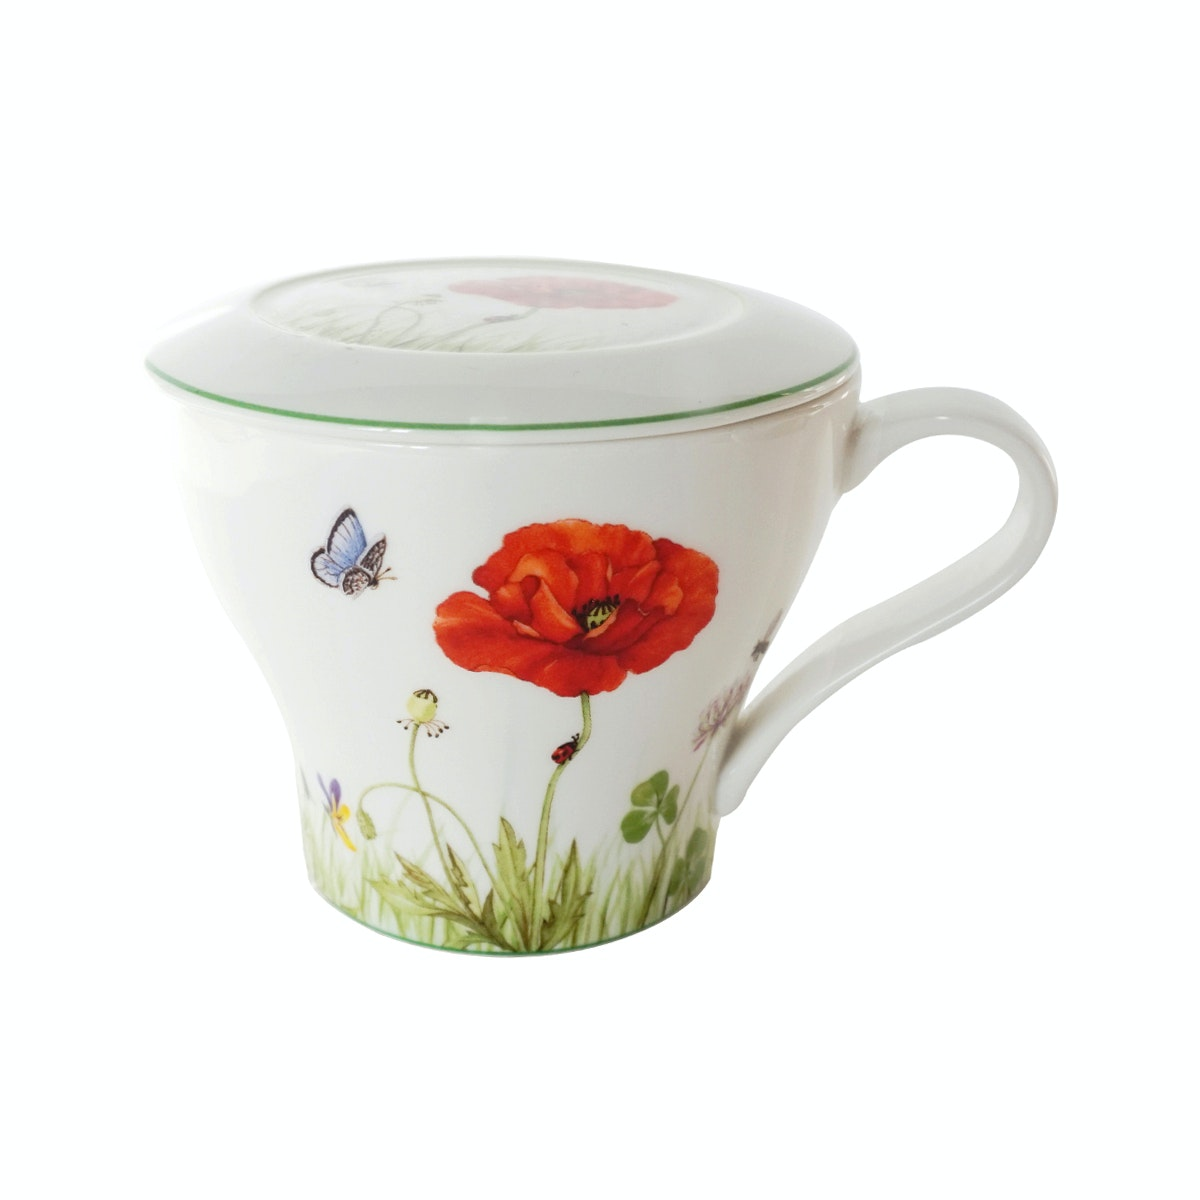 Saint James Premium Tableware Blade Poppy Mug Set 2pcs